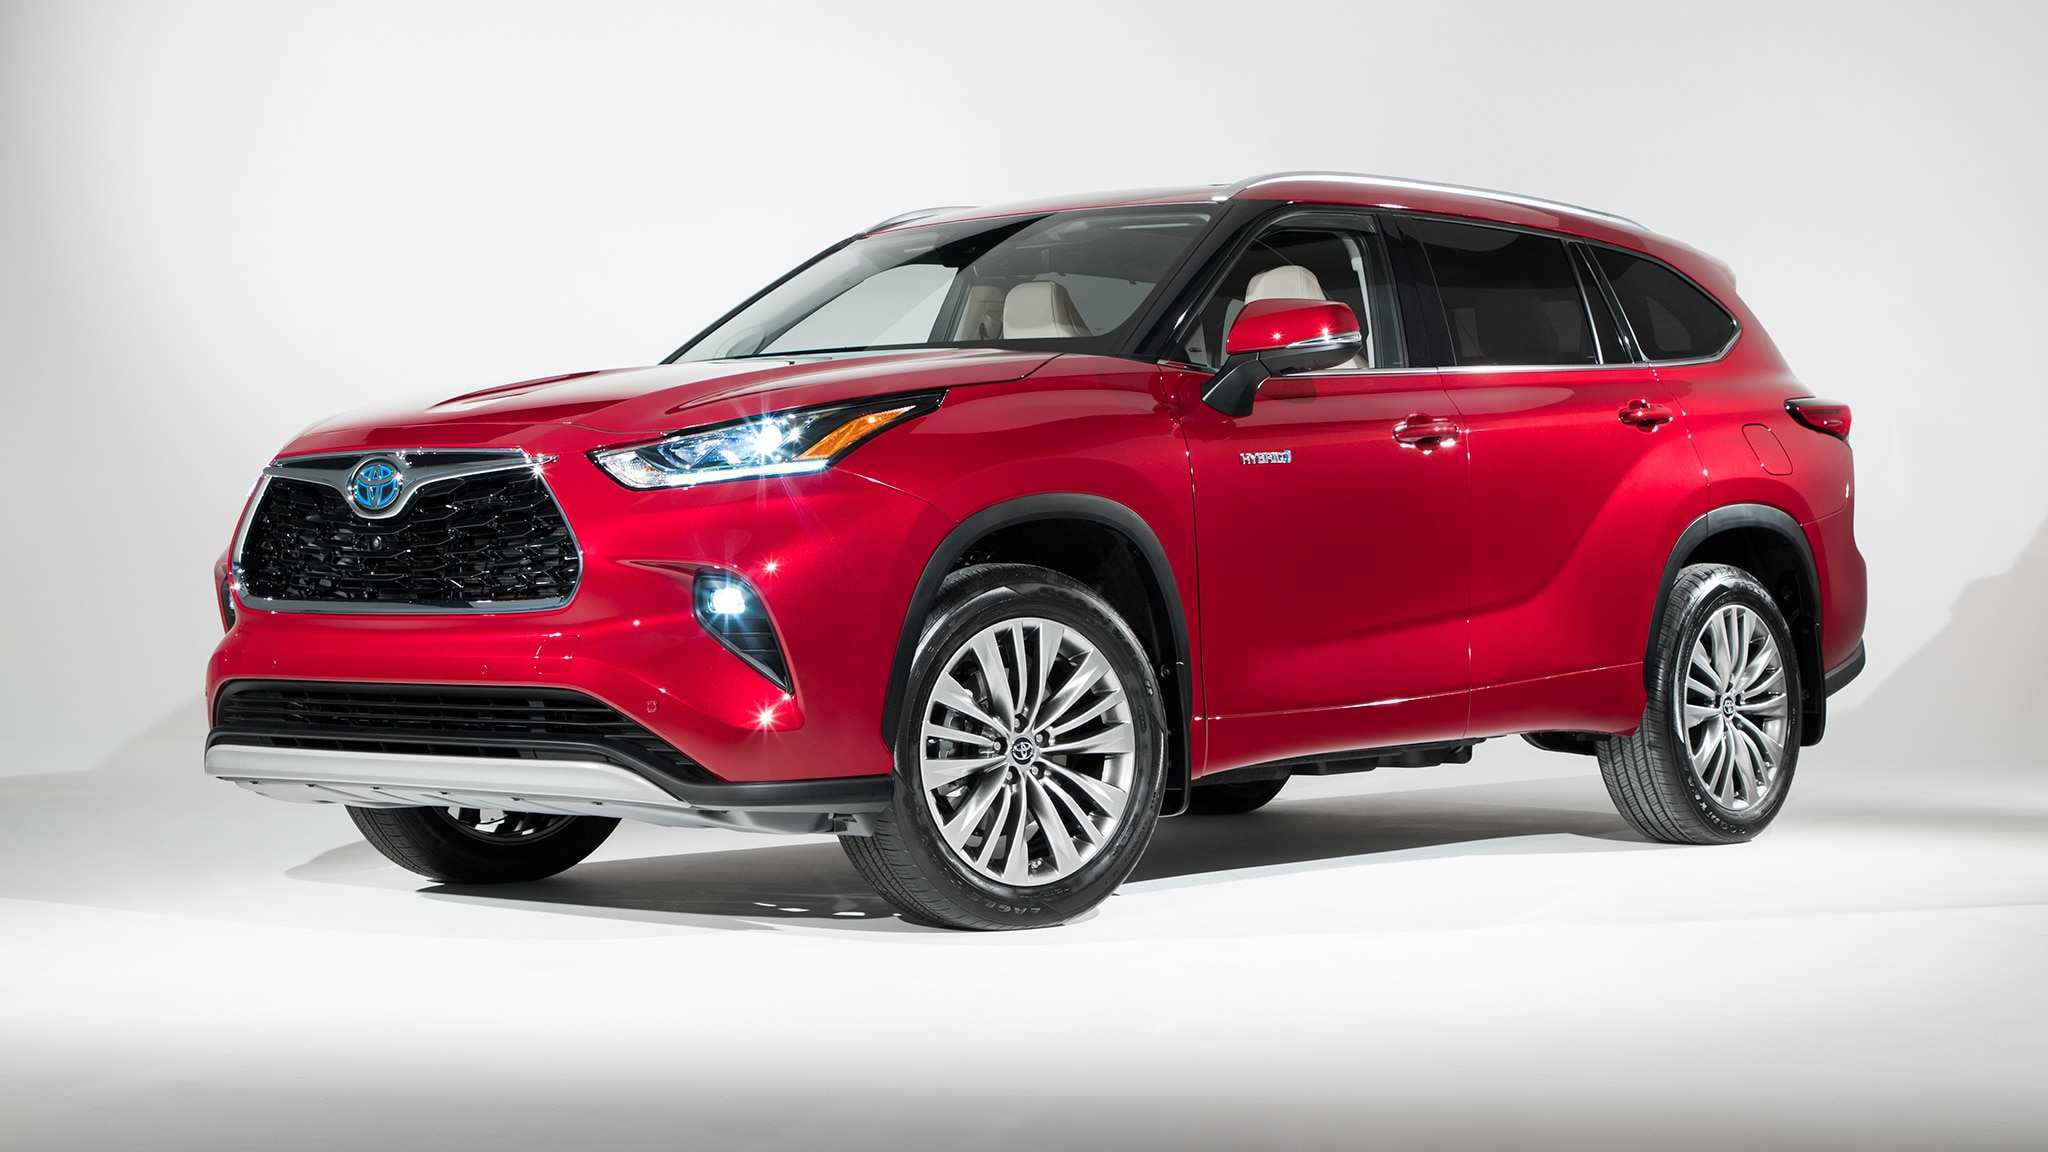 50 Concept of Toyota Kluger New 2020 New Concept with Toyota Kluger New 2020